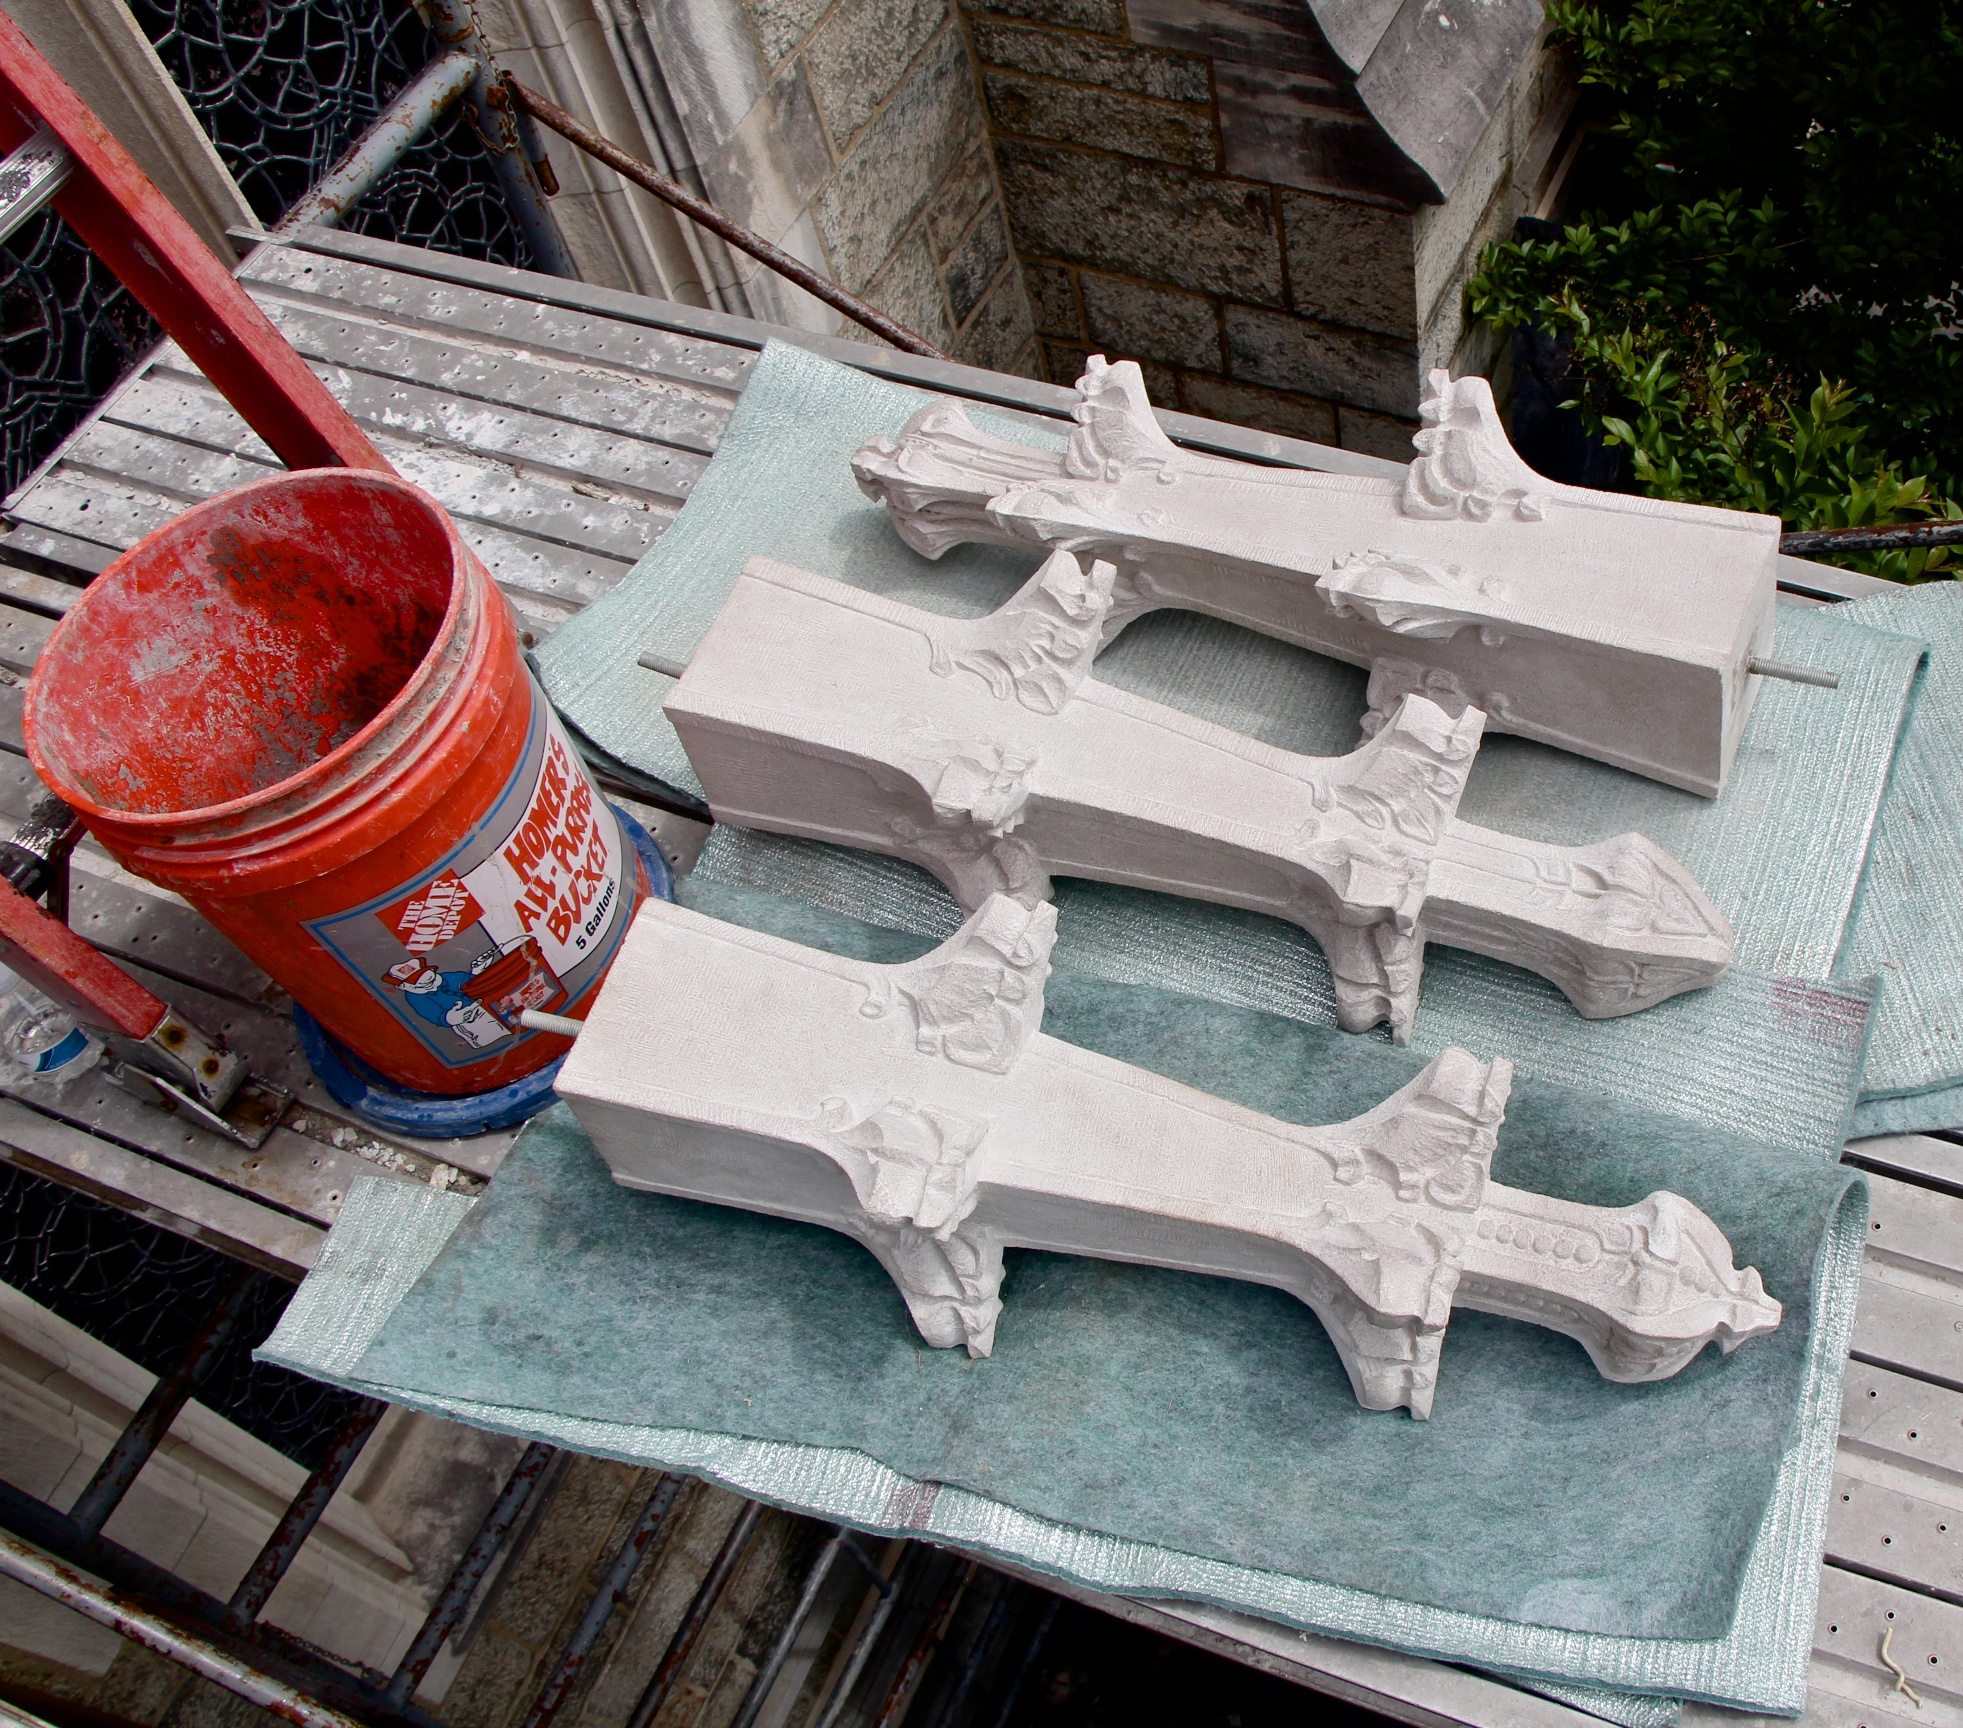 Figure 7: Three completed limestone finials ready for installation above the south entry of Bryn Athyn Cathedral. These will replace the original, badly degraded finials.